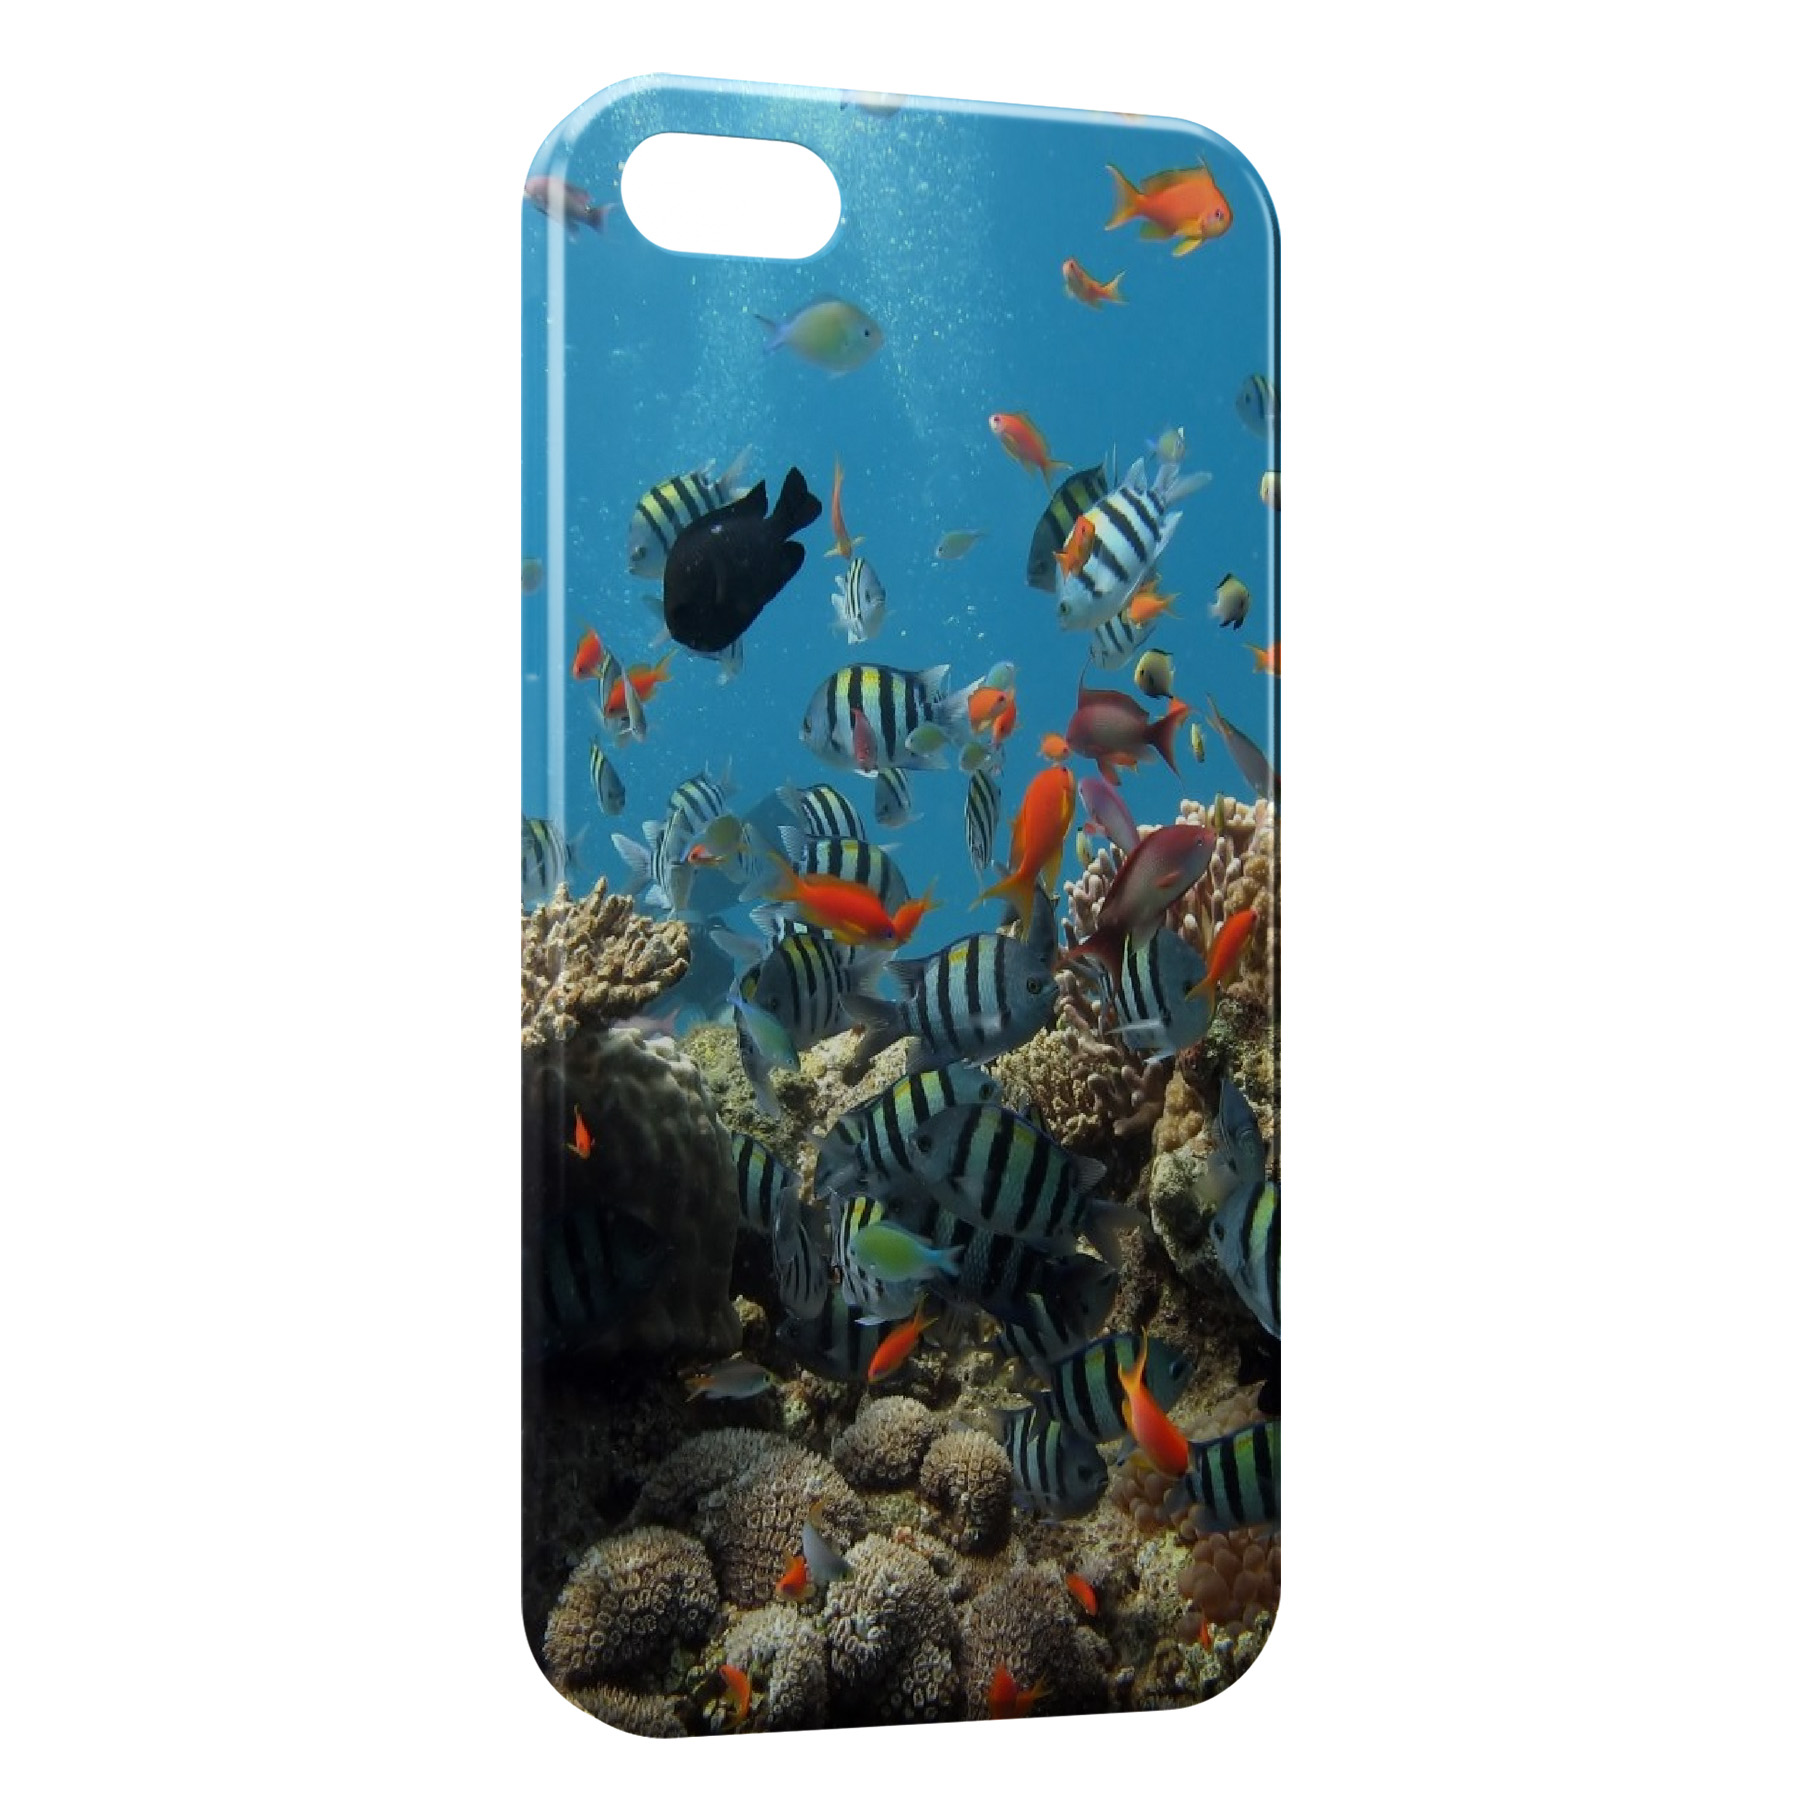 coque iphone 6 aquarium